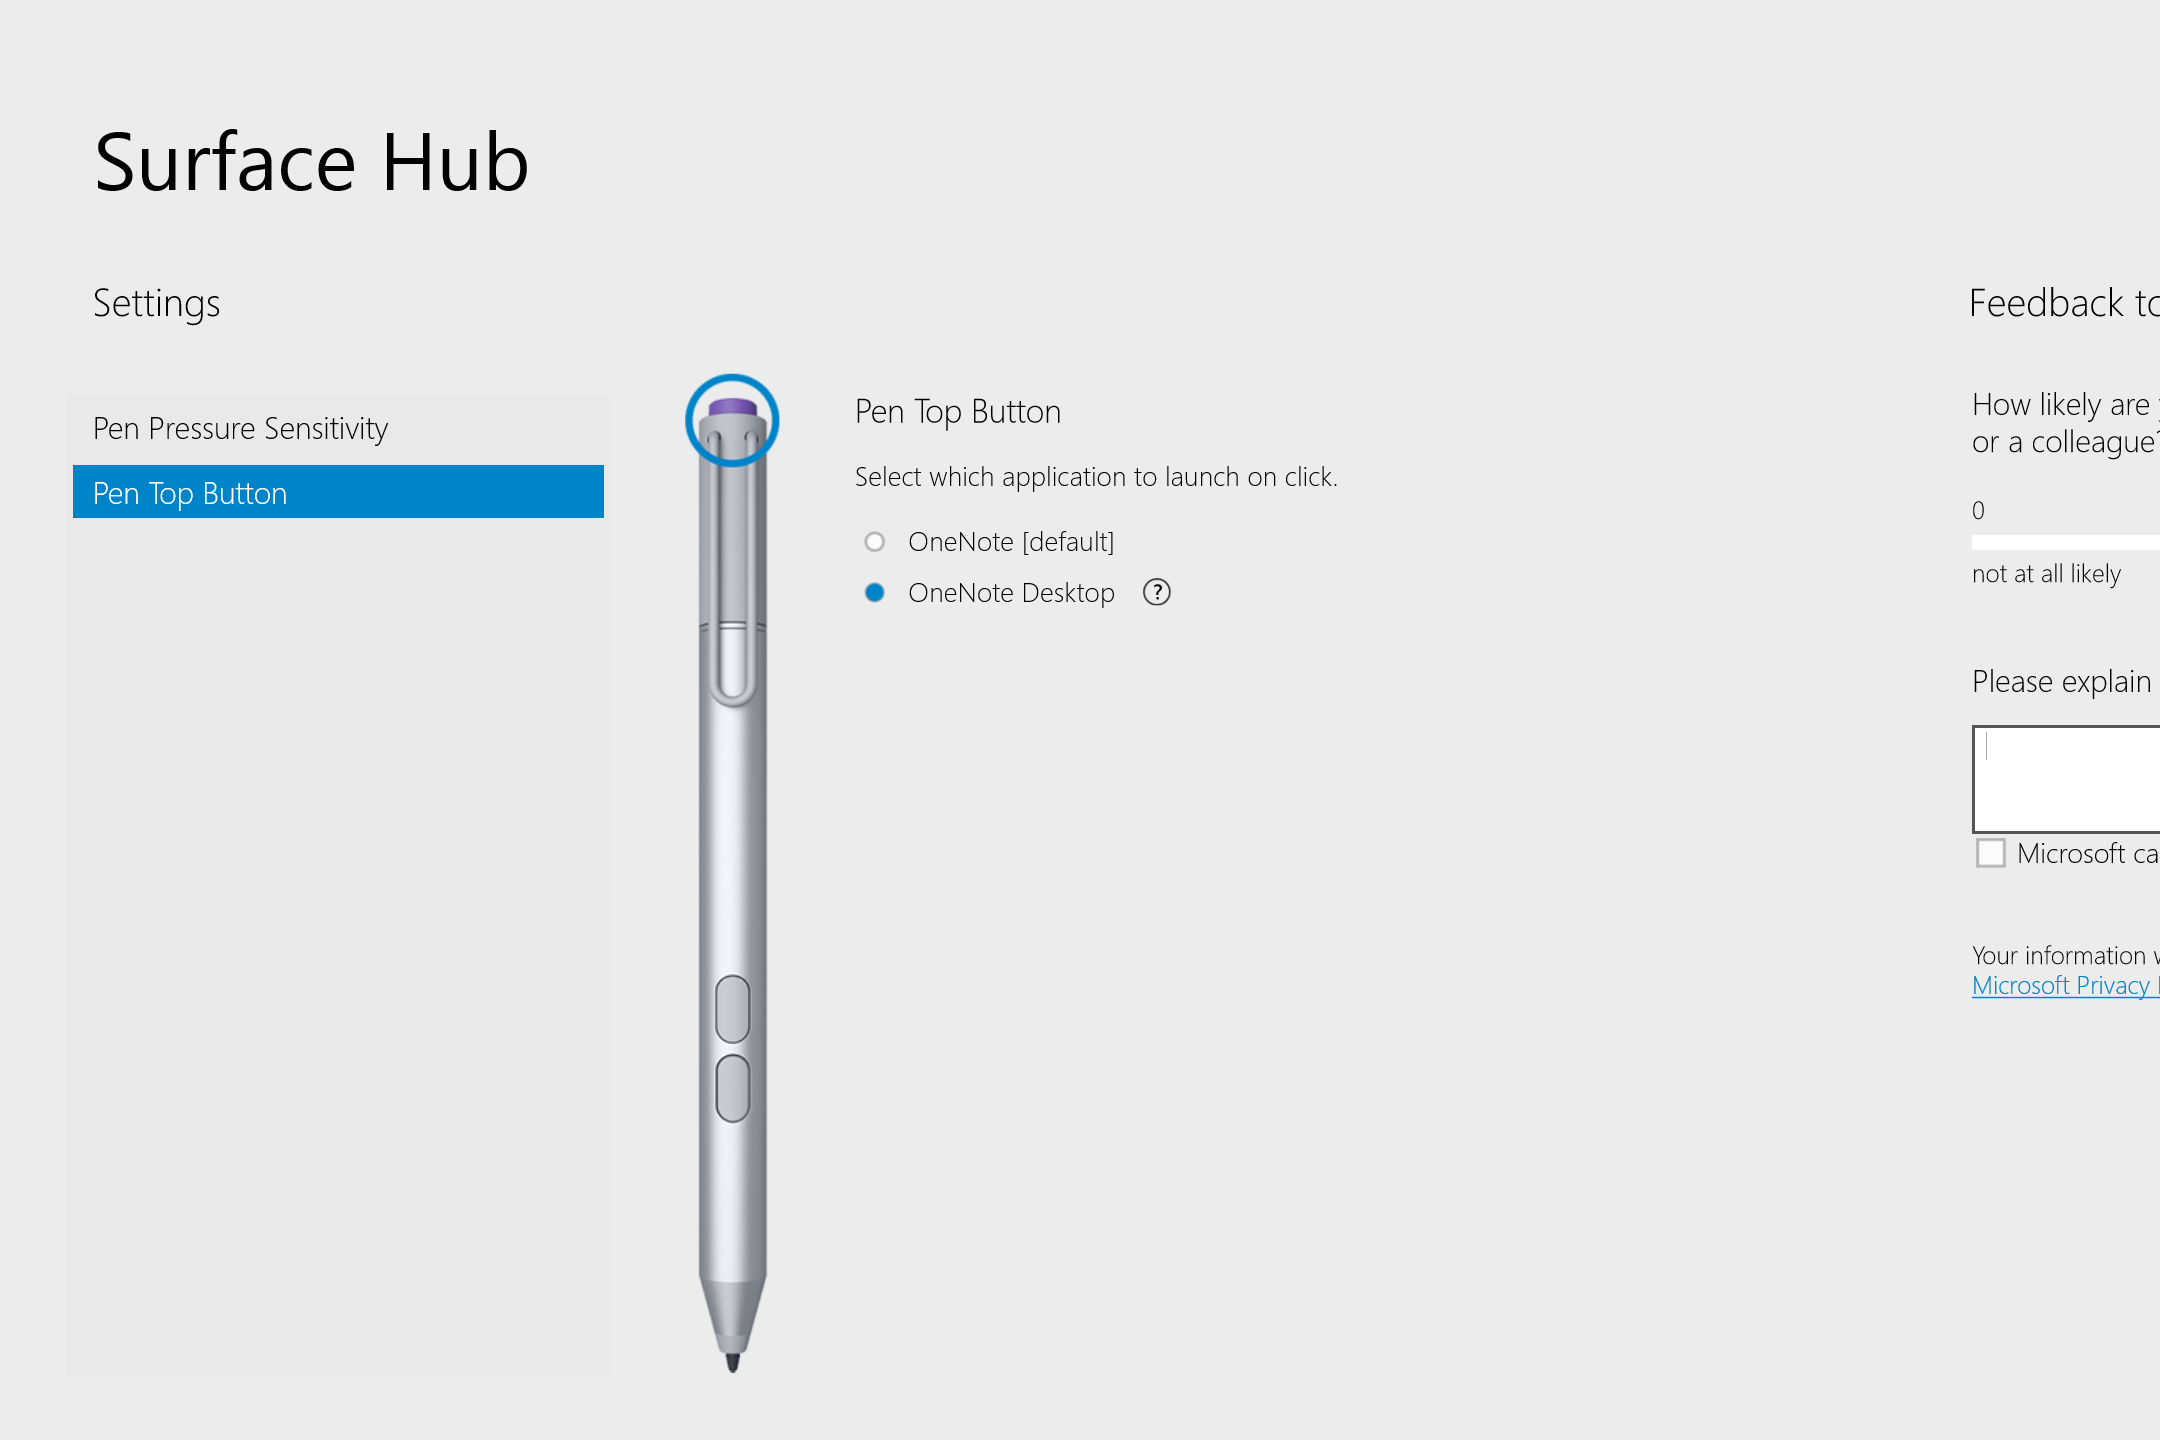 Besides editing pen pressure, the app allows you to determine which version of OneNote (desktop or Modern) opens when the pen top button is pressed.